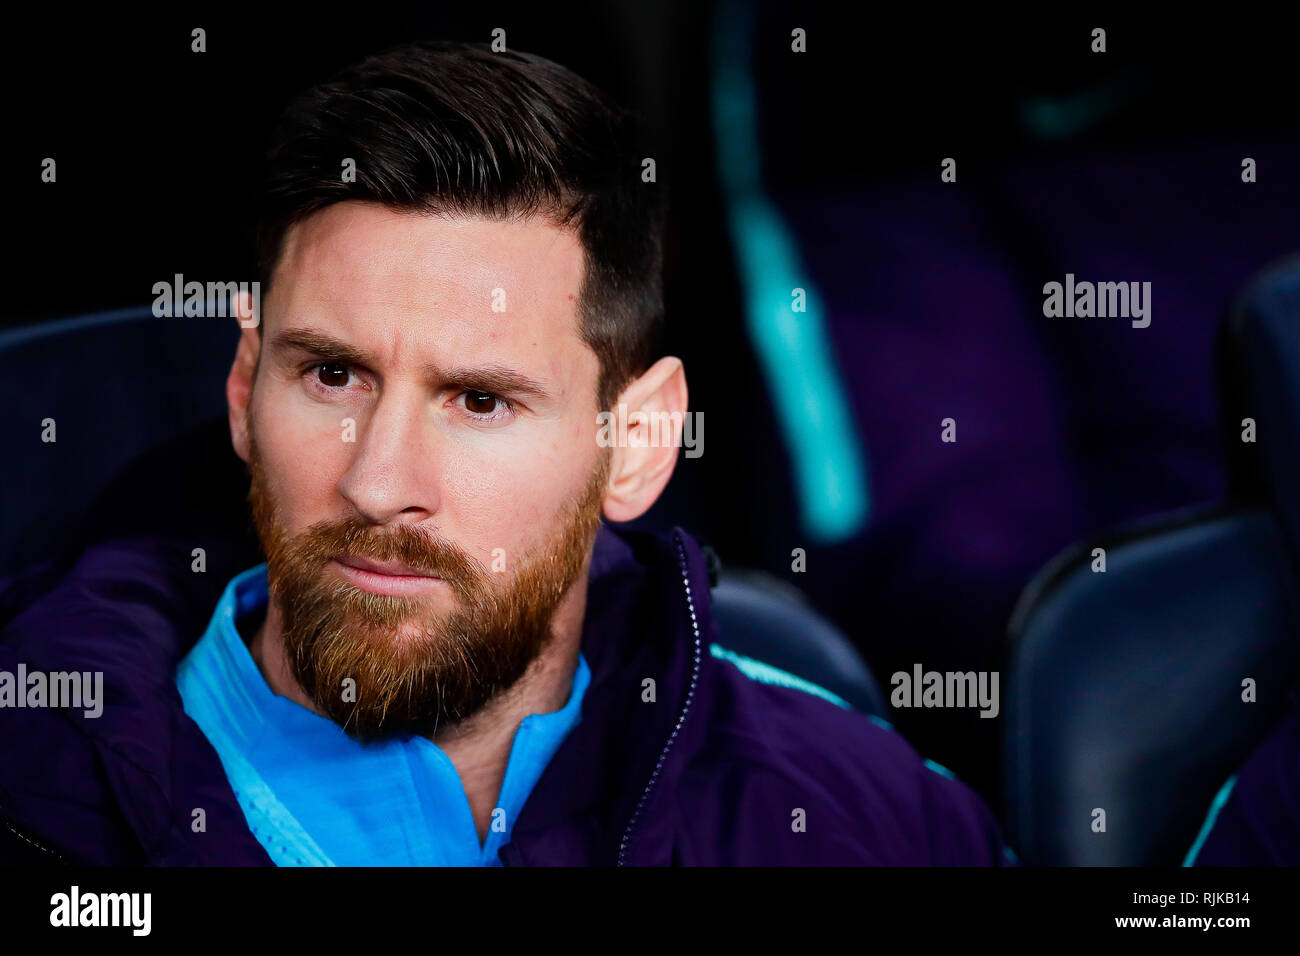 Camp Nou, Barcelona, Spain. 6th Feb, 2019. Copa del Rey football semi final, 1st leg, Barcelona versus Real Madrid; Lionel Messi of FC Barcelona starts on the bench due to injury worries Credit: Action Plus Sports/Alamy Live News - Stock Image